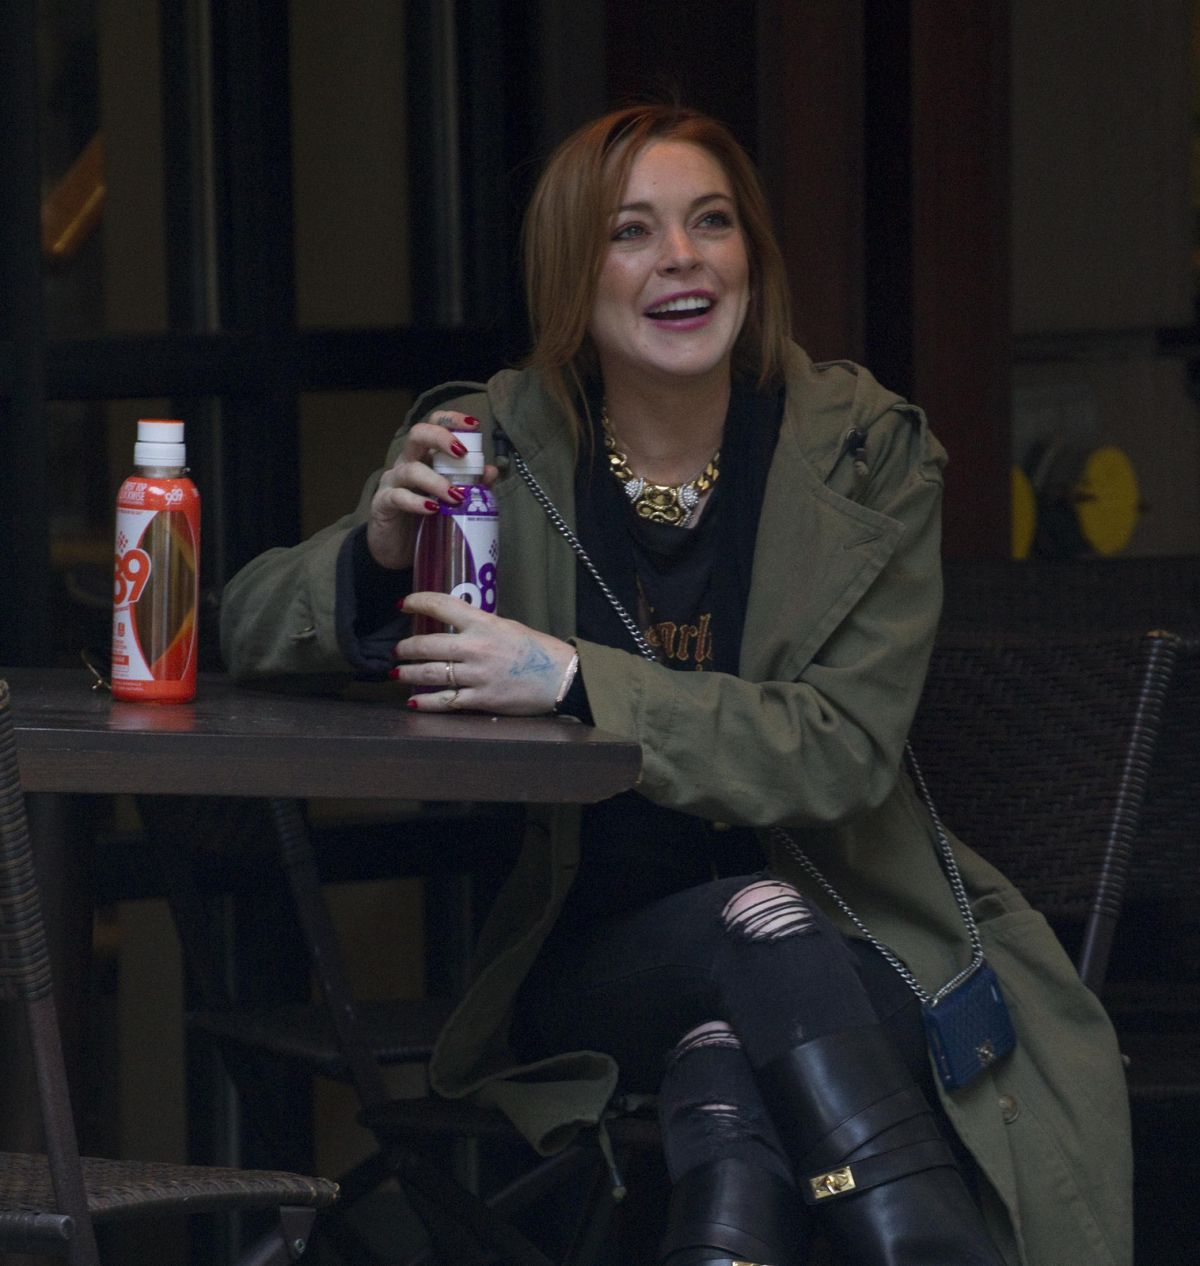 LINDSAY LOHAN at a Hotel in New York